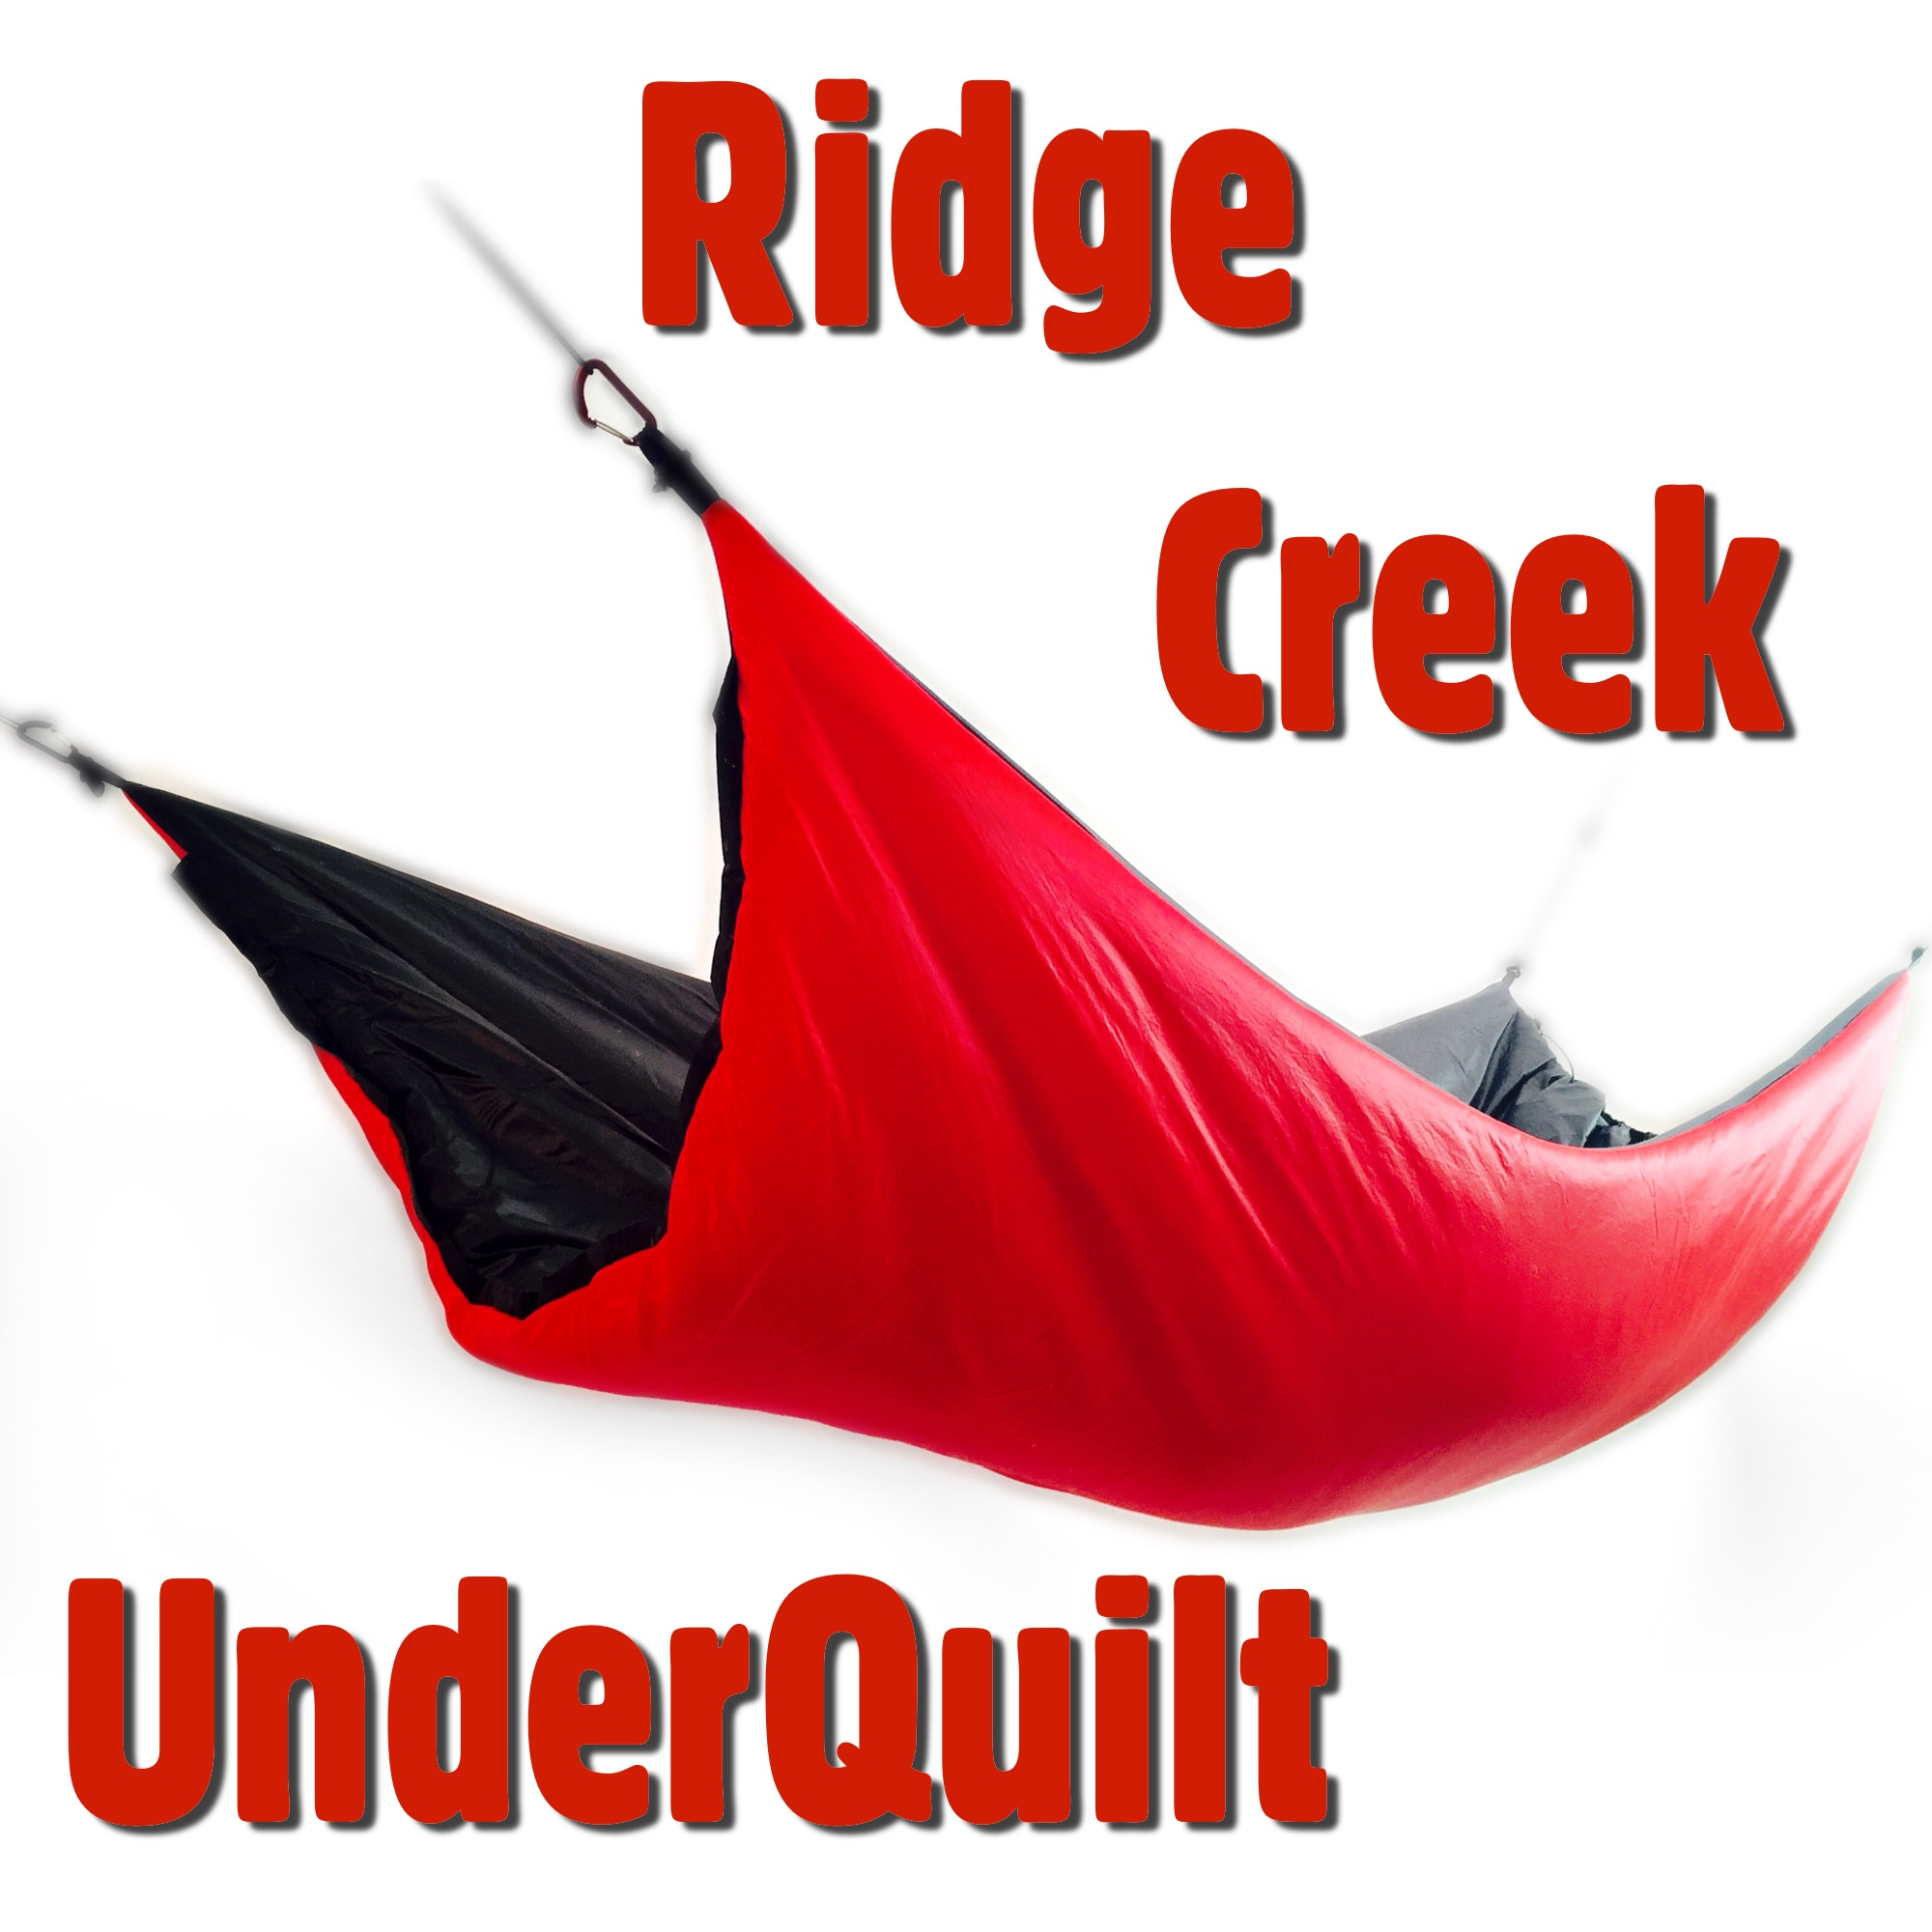 Ridge Creek Underquilt